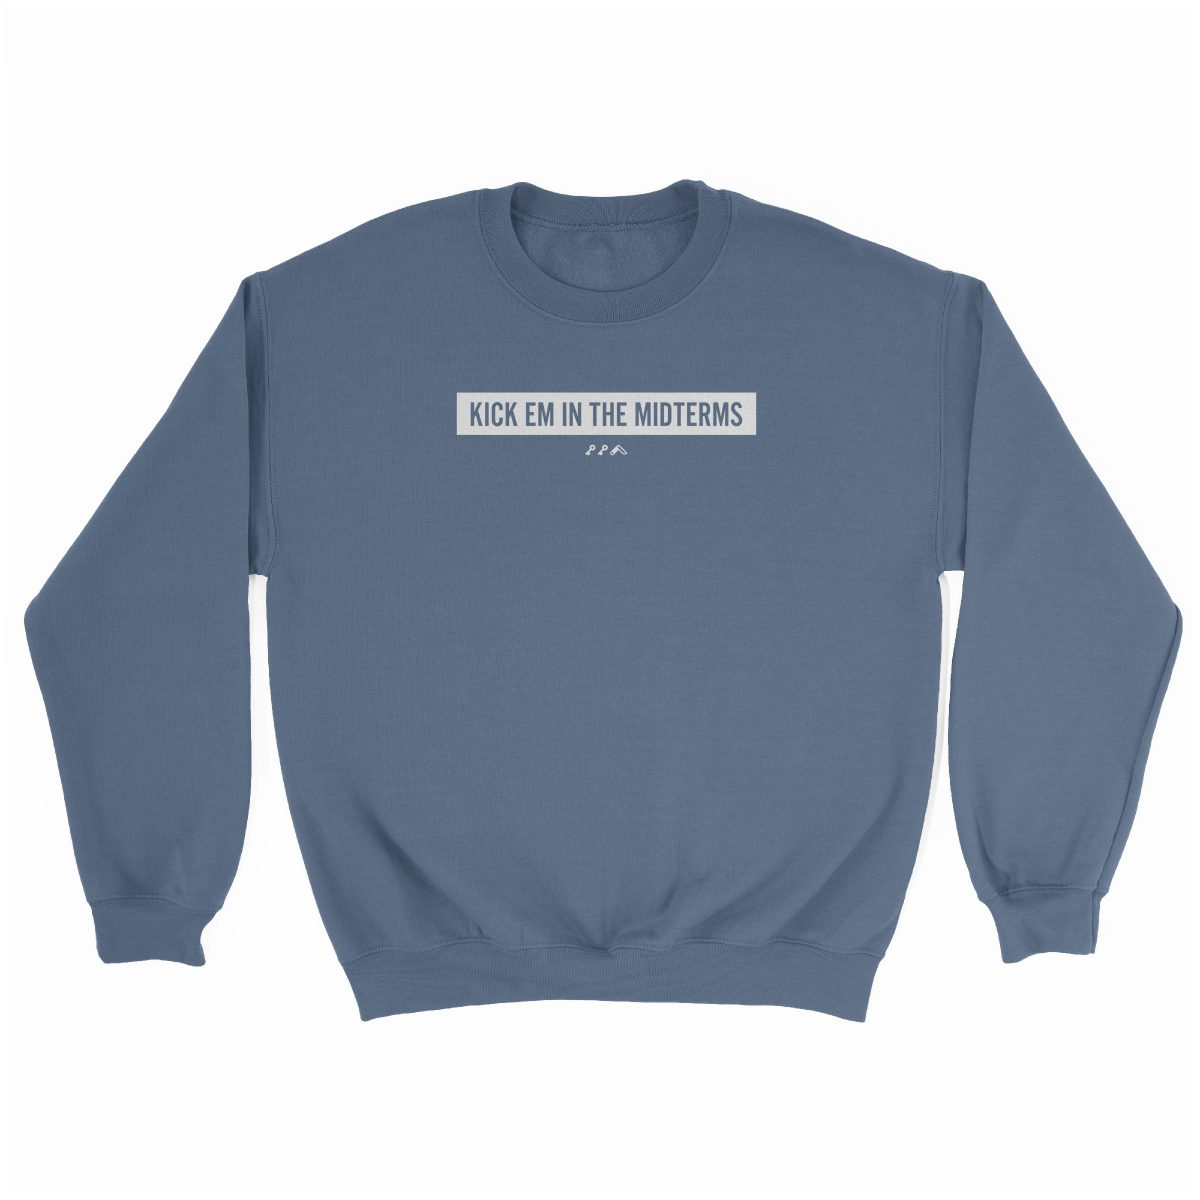 """KICK EM IN THE MIDTERMS"" funny political sweatshirt in indigo"